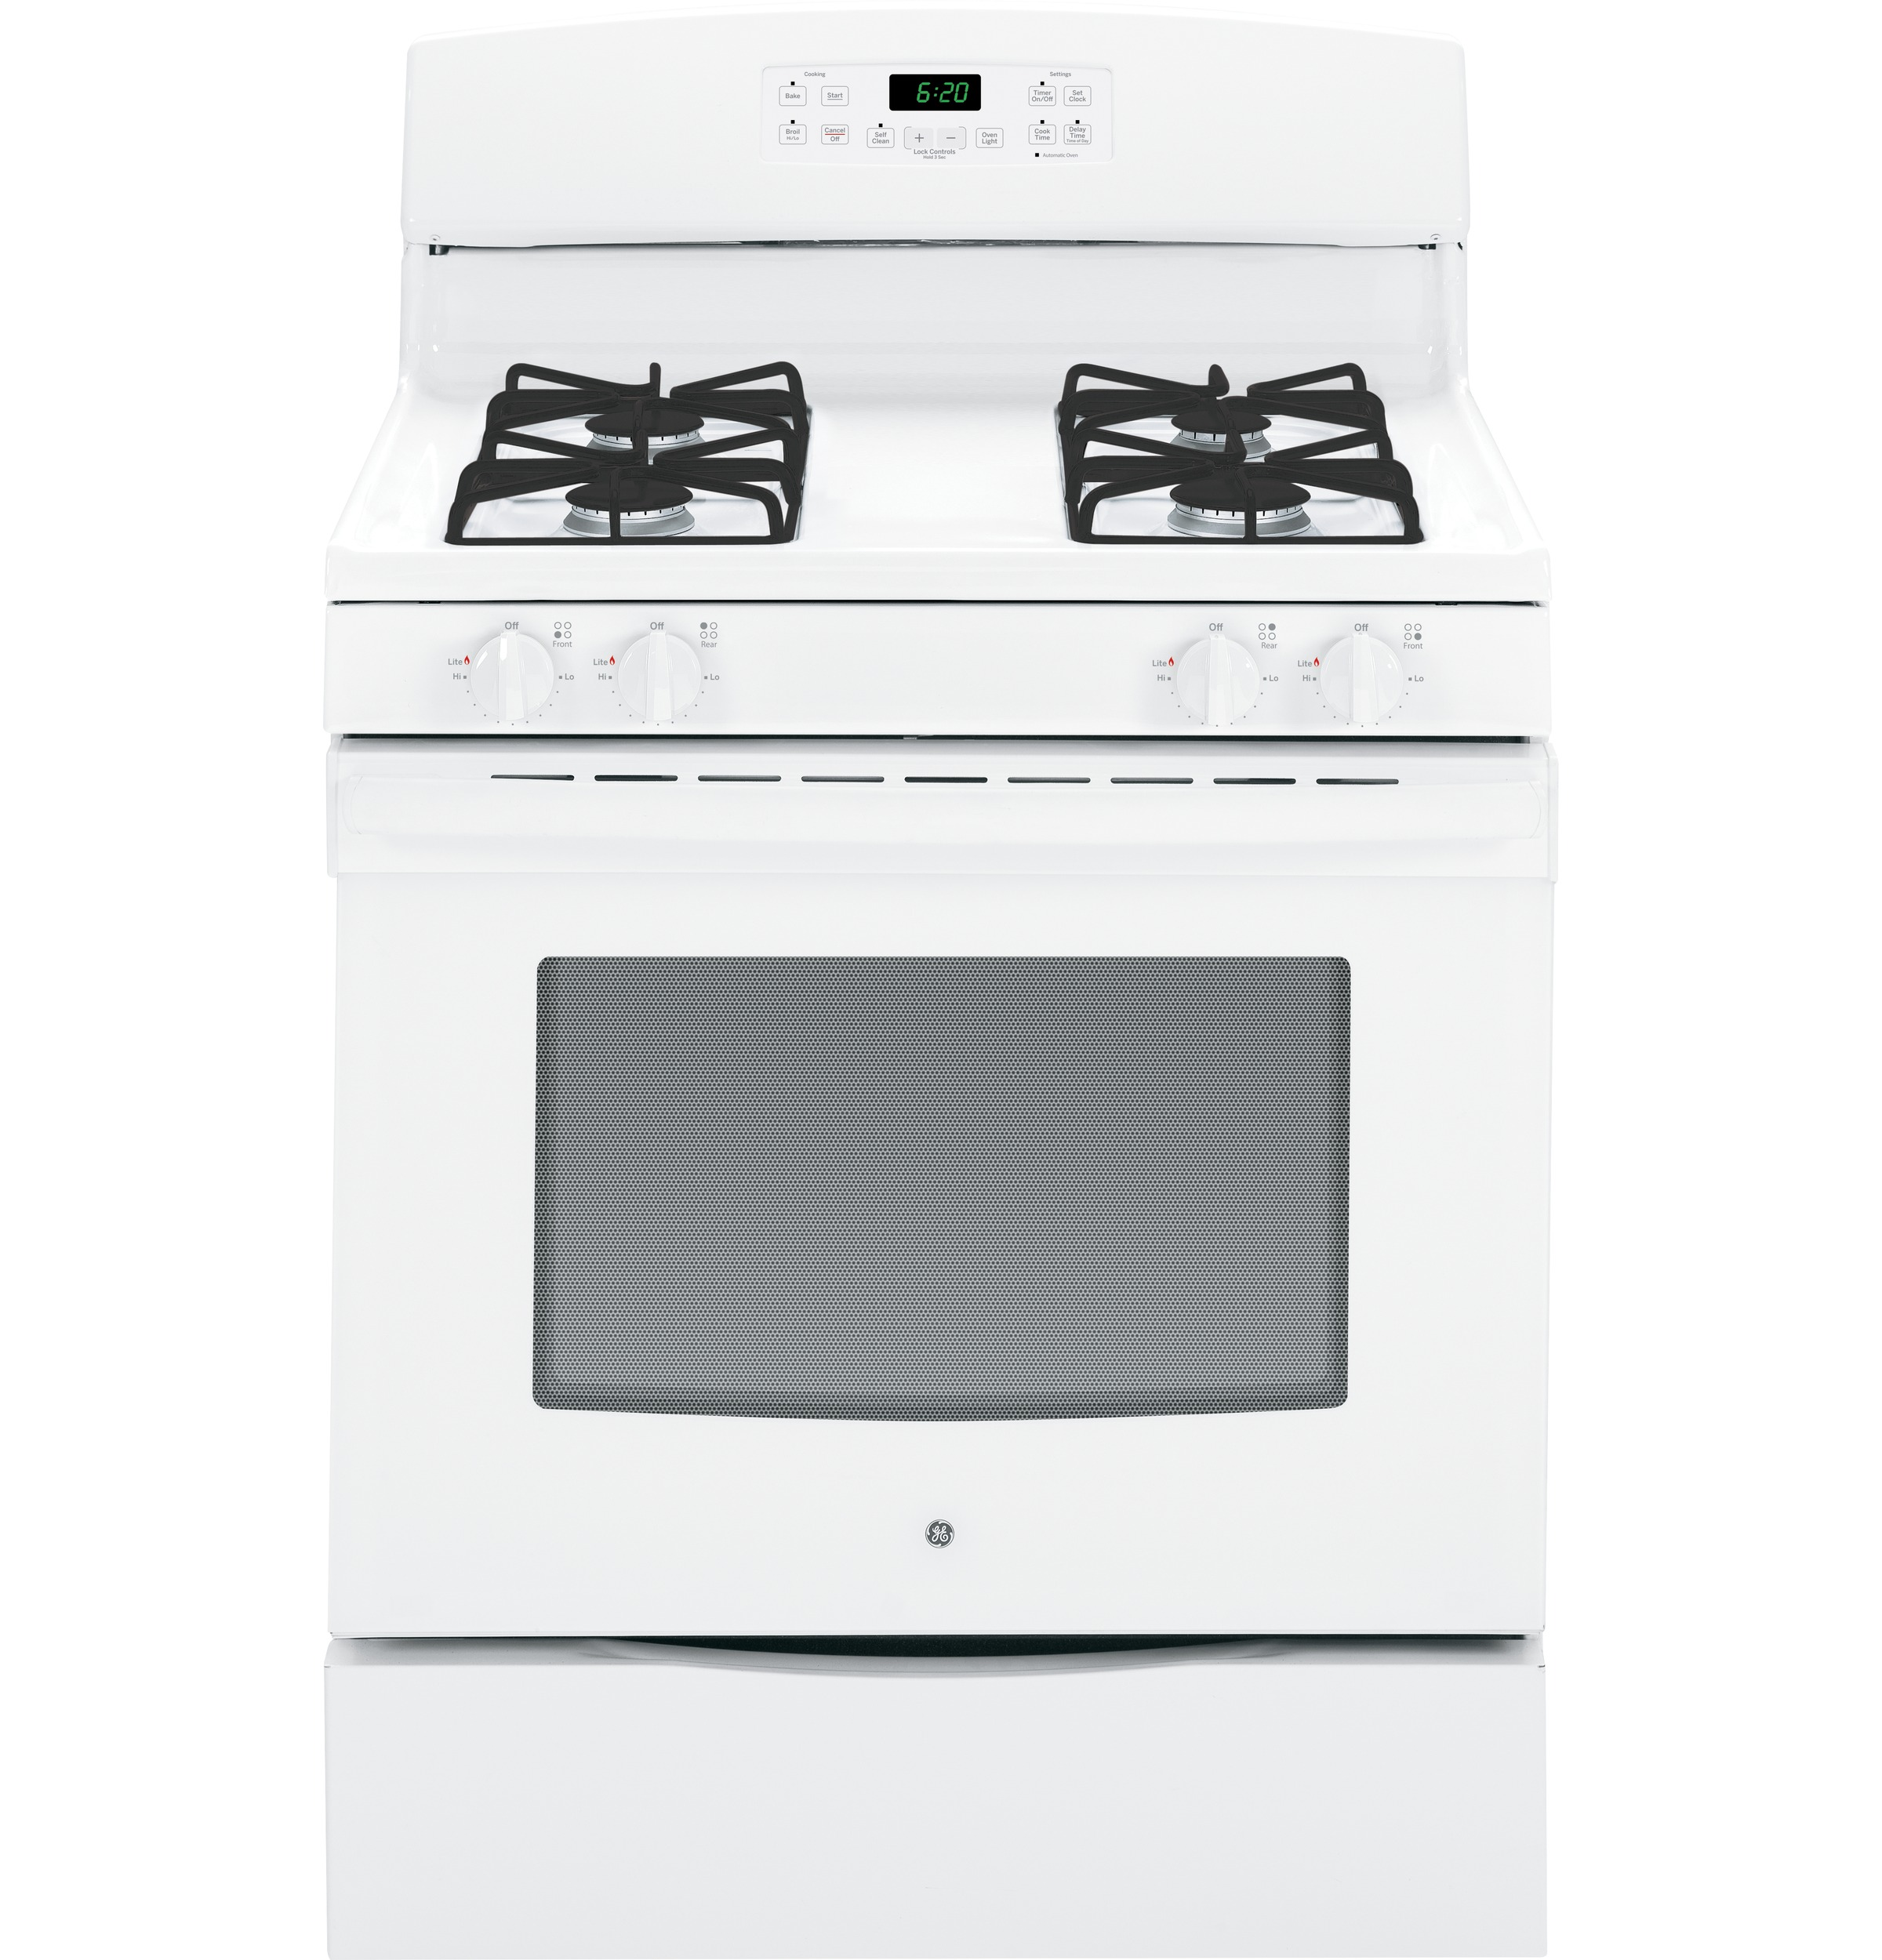 "General Electric JGB620DEFWW 30"" Freestanding Gas Range"